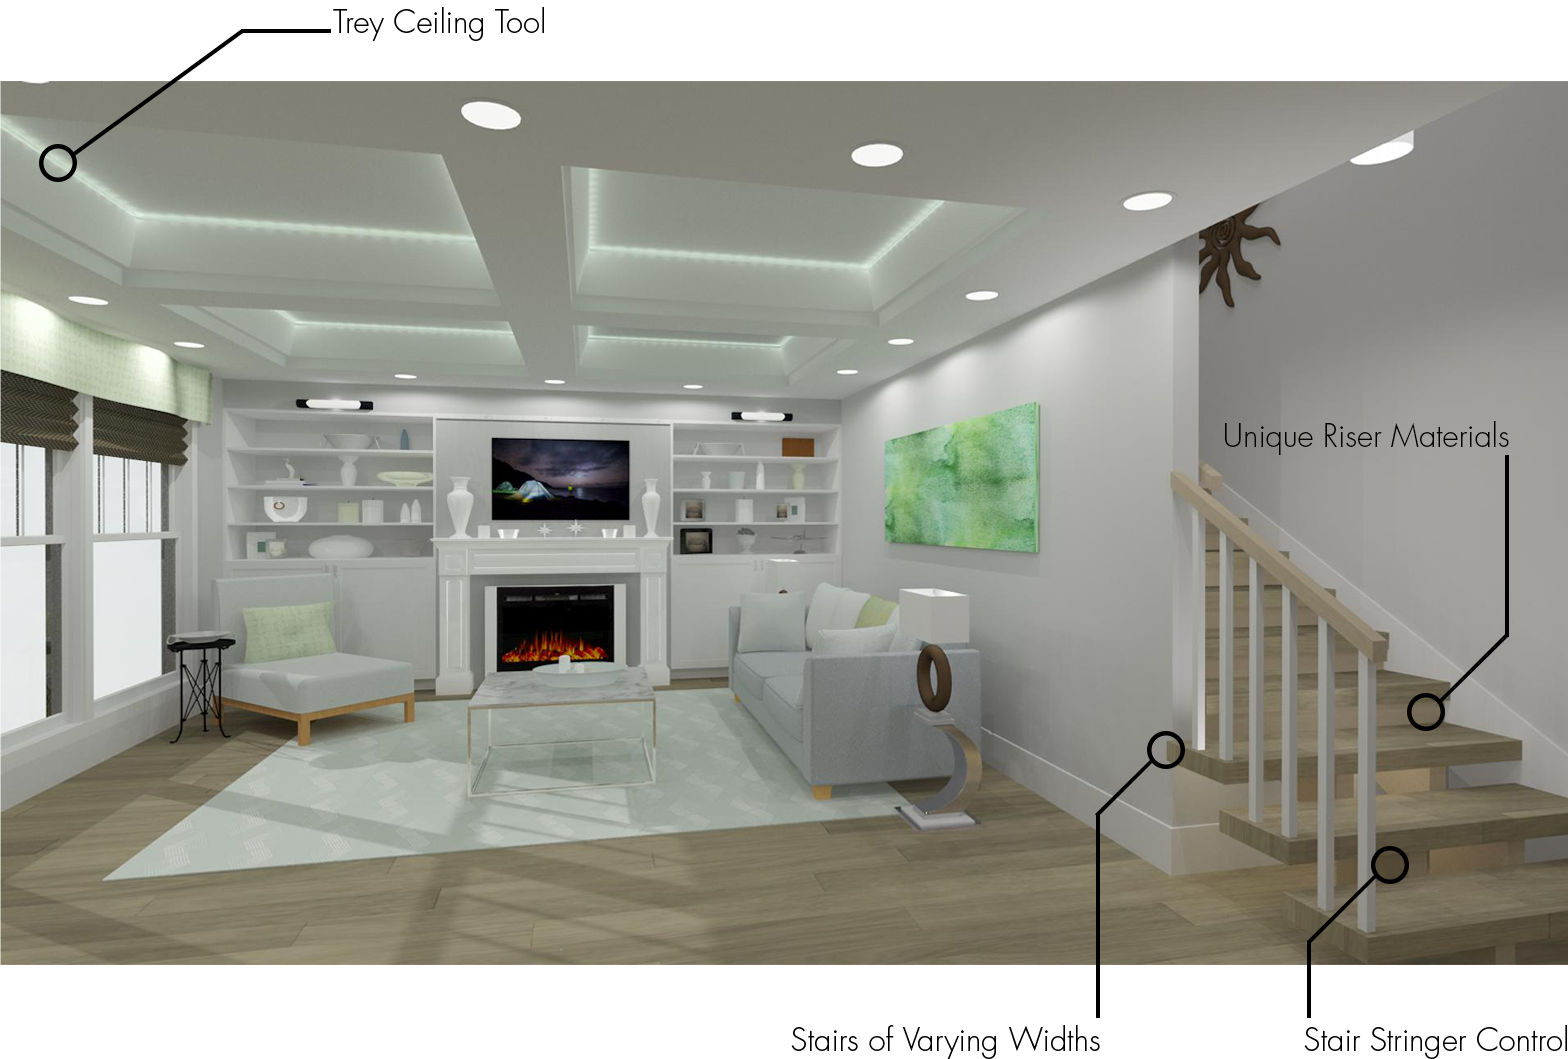 A living room that highlights the new stair and ceiling features in Chief Architect.